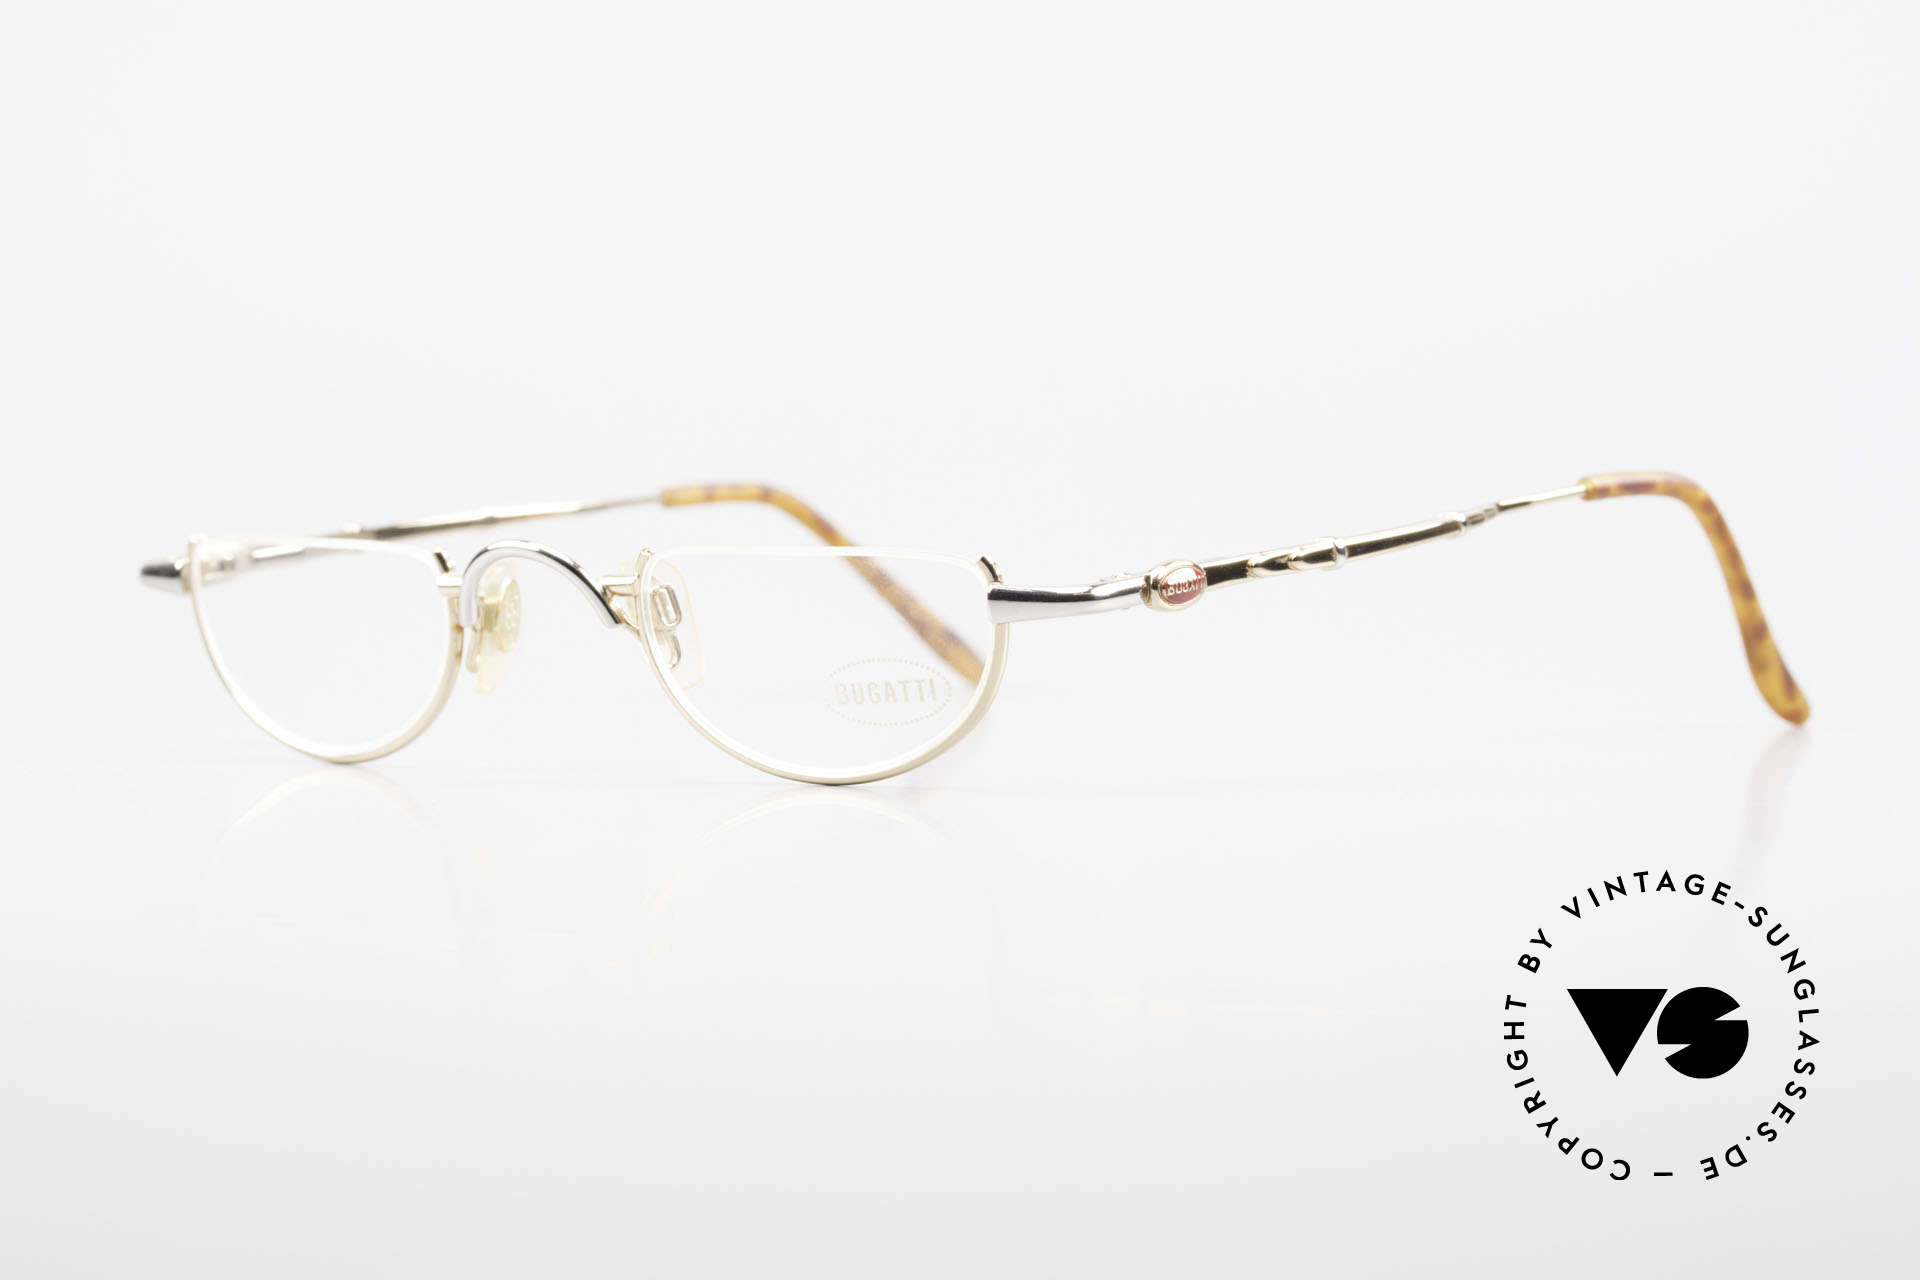 Bugatti 28108 Men's Reading Frame Bicolor, the temples are shaped like a leaf spring, UNIQUE!, Made for Men